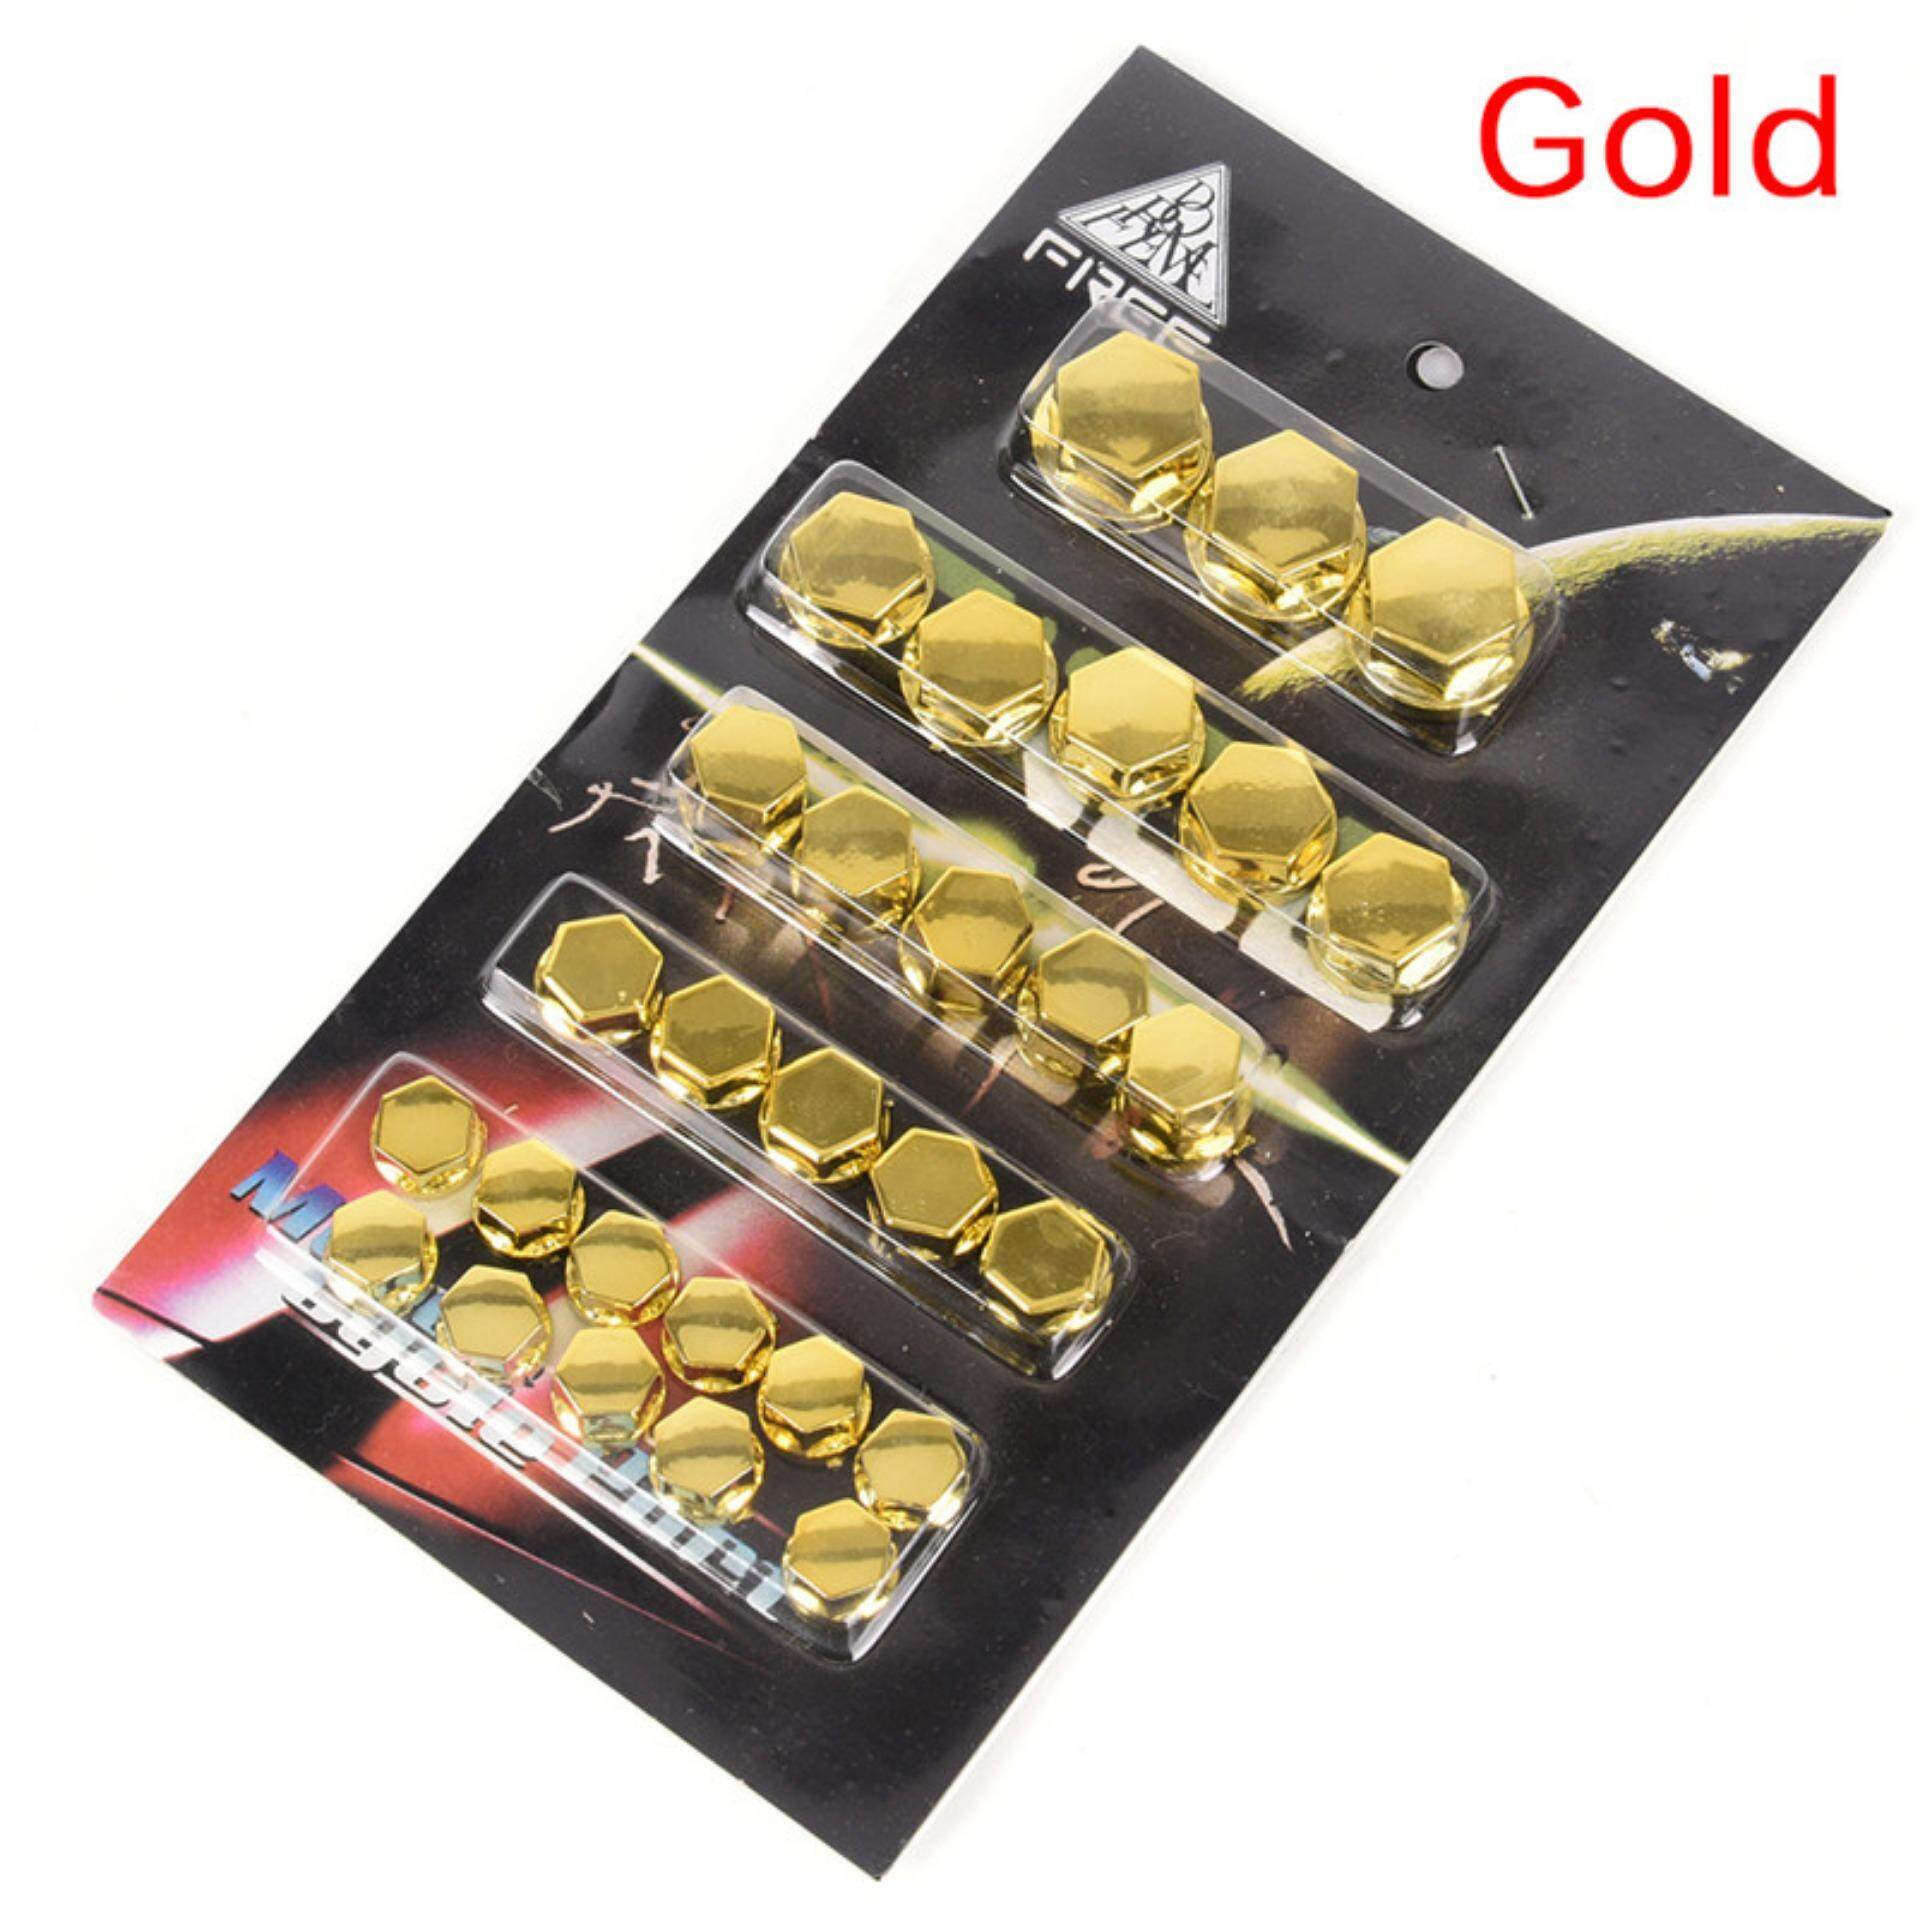 Orange Sunshine 30pcs Motorcycle Screw Nut Bolt Cap Cover Decoration Centro Motorbike Ornament Popular Gold By Orange Sunshine.